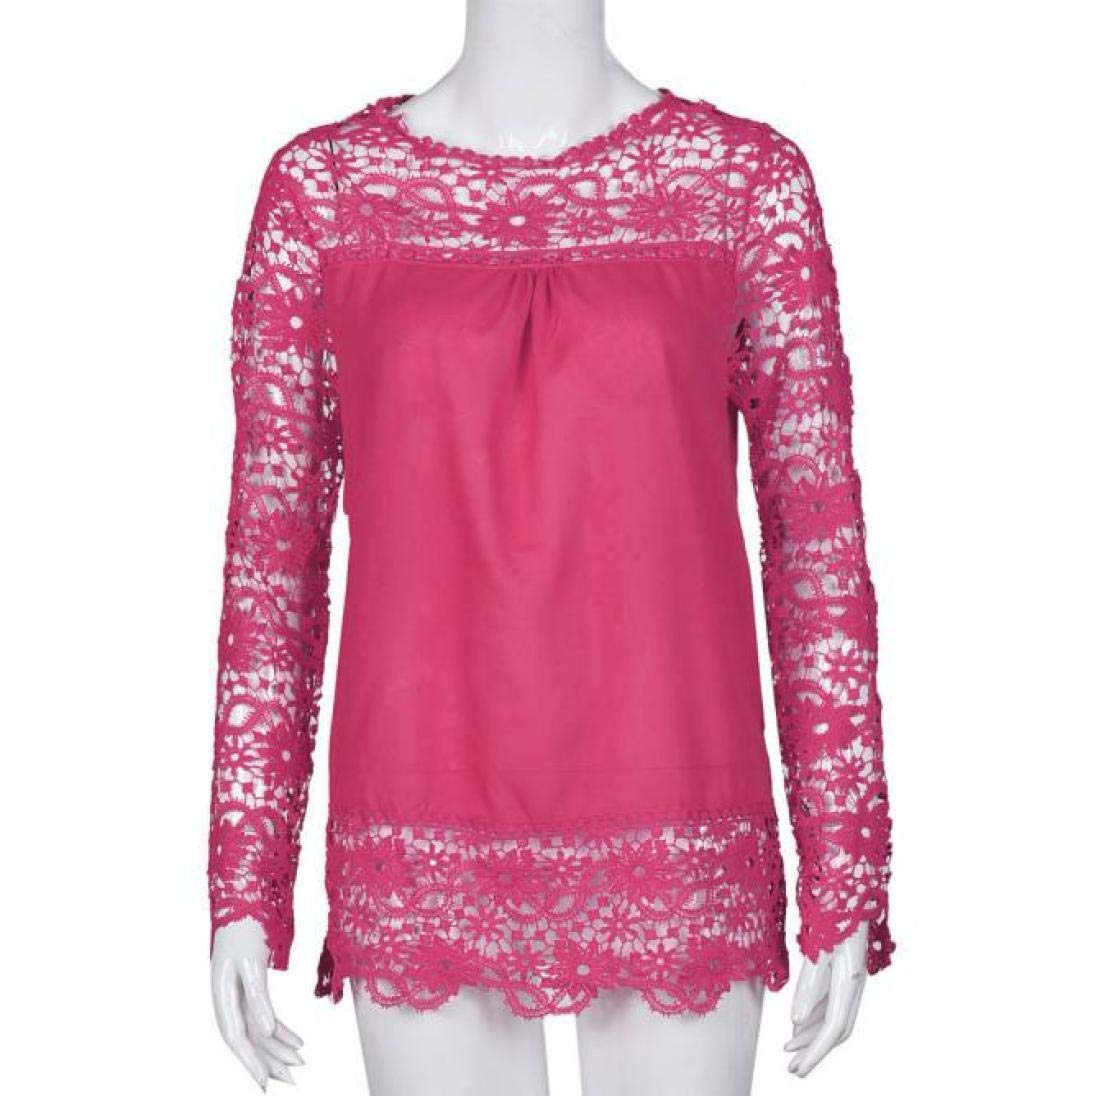 Women Plus Size Hollow Out Lace Splice Long Sleeve Shirt Casual Blouse Loose Top(hot red,Medium) by iQKA (Image #3)